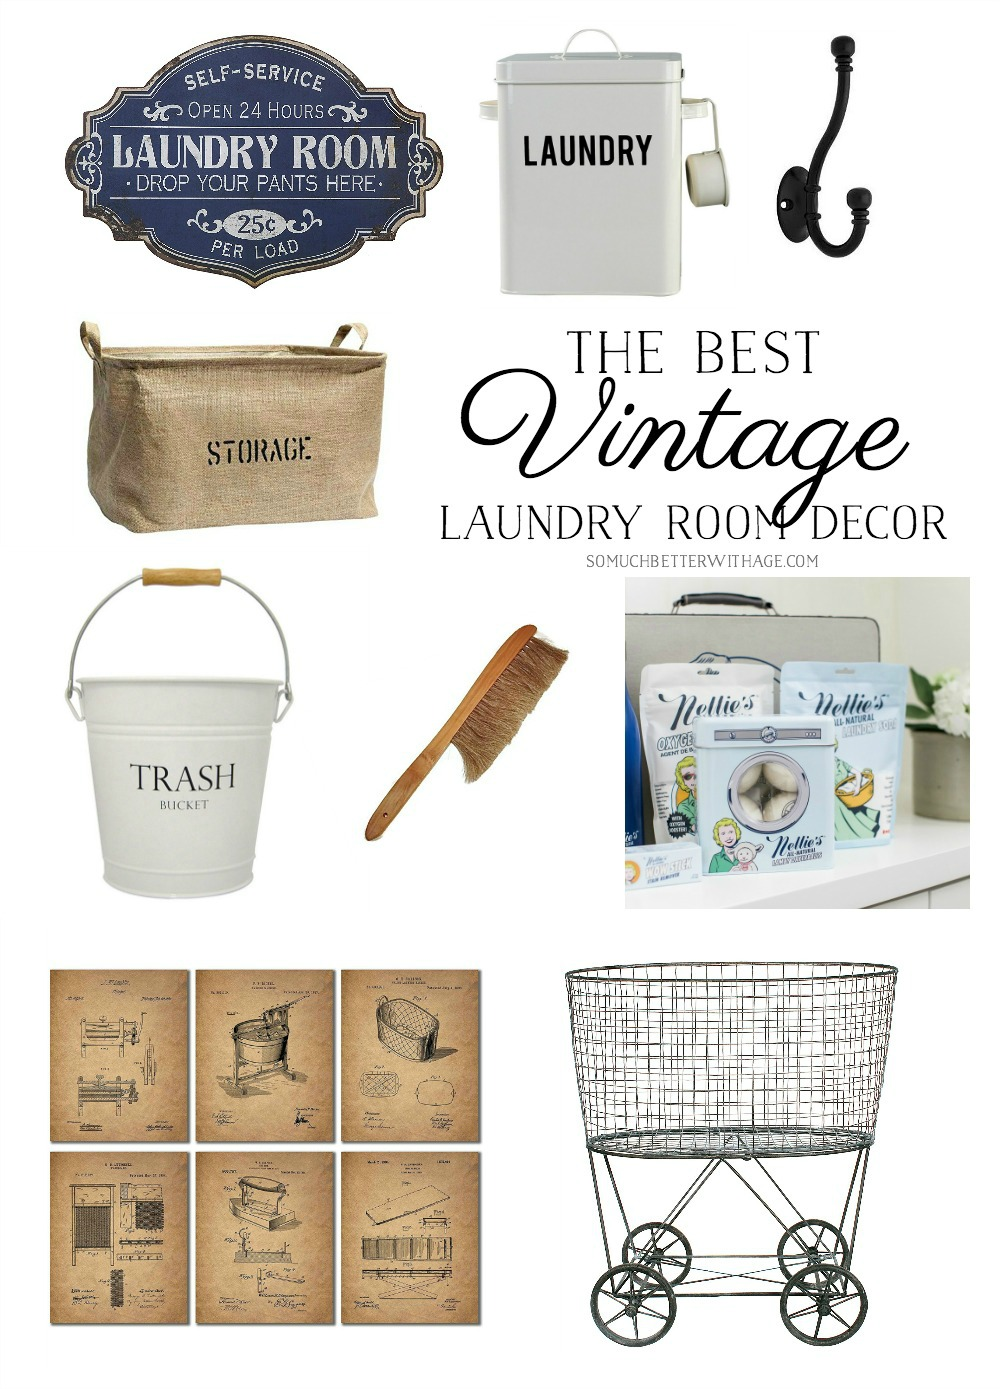 Vintage Laundry Room Decor The Best Vintage Laundry Room Decor  Giveaway  So Much Better